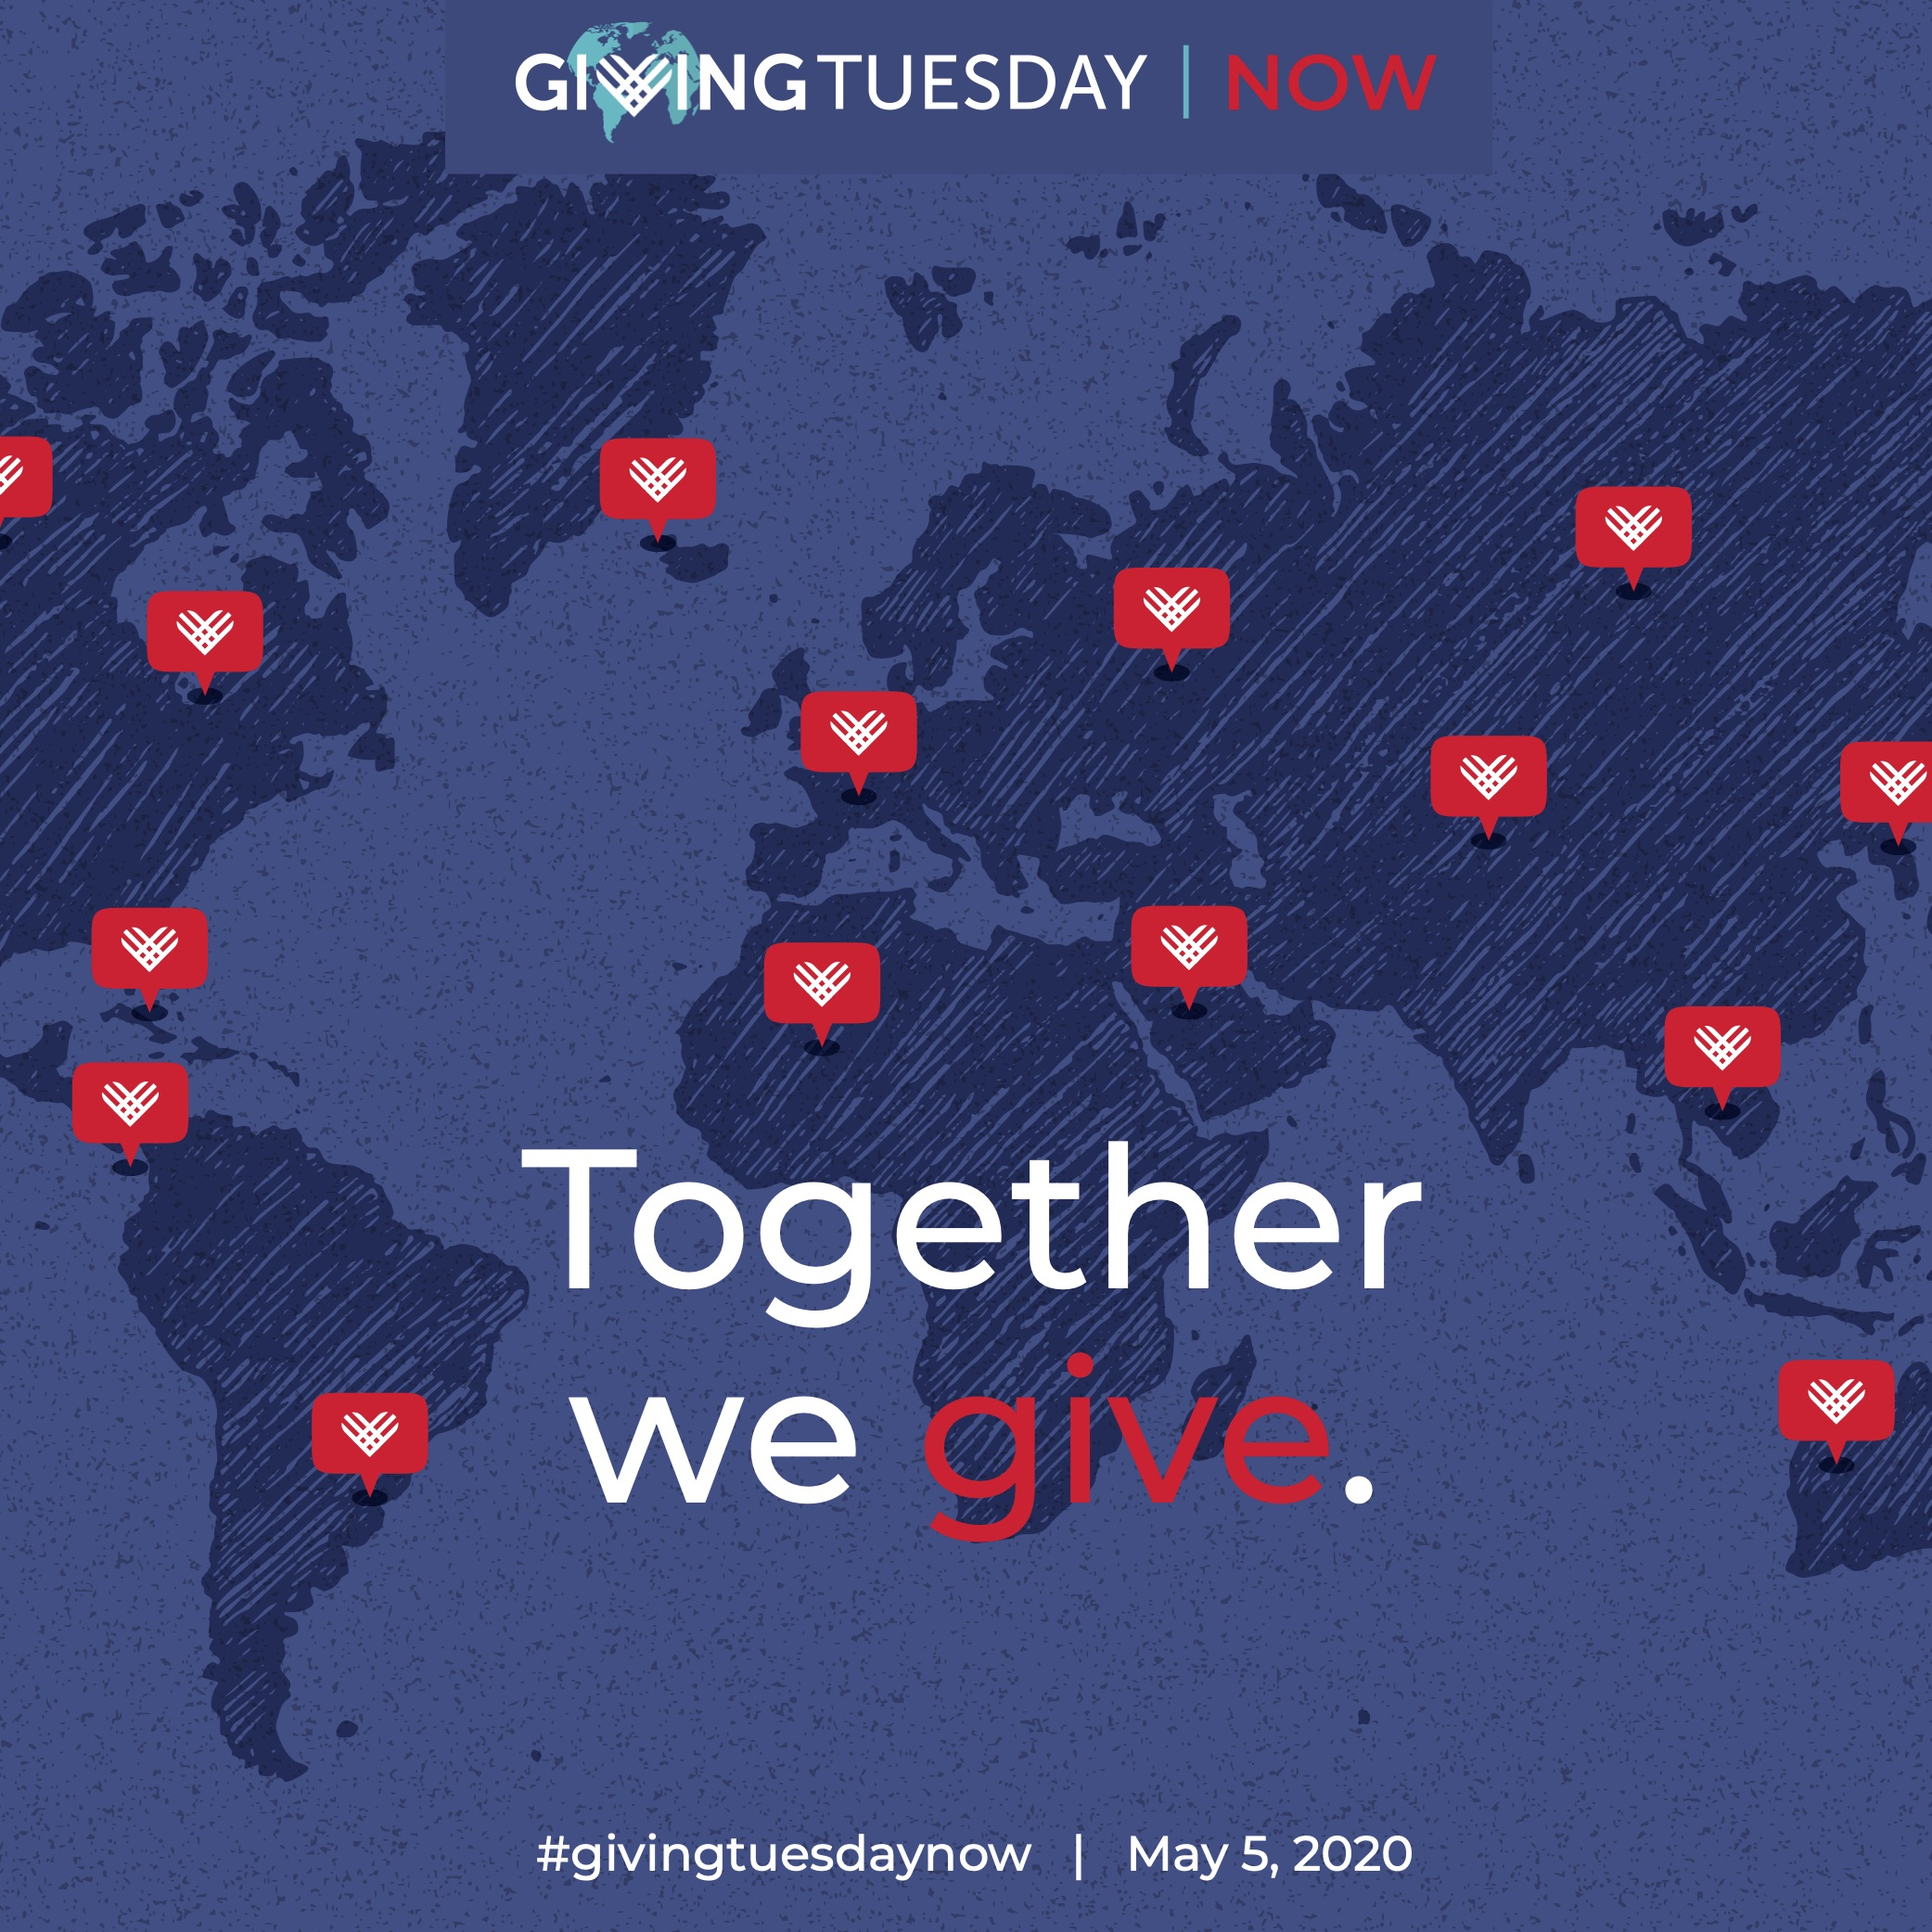 GivingTuesdayNow_Social-Globe Design copy